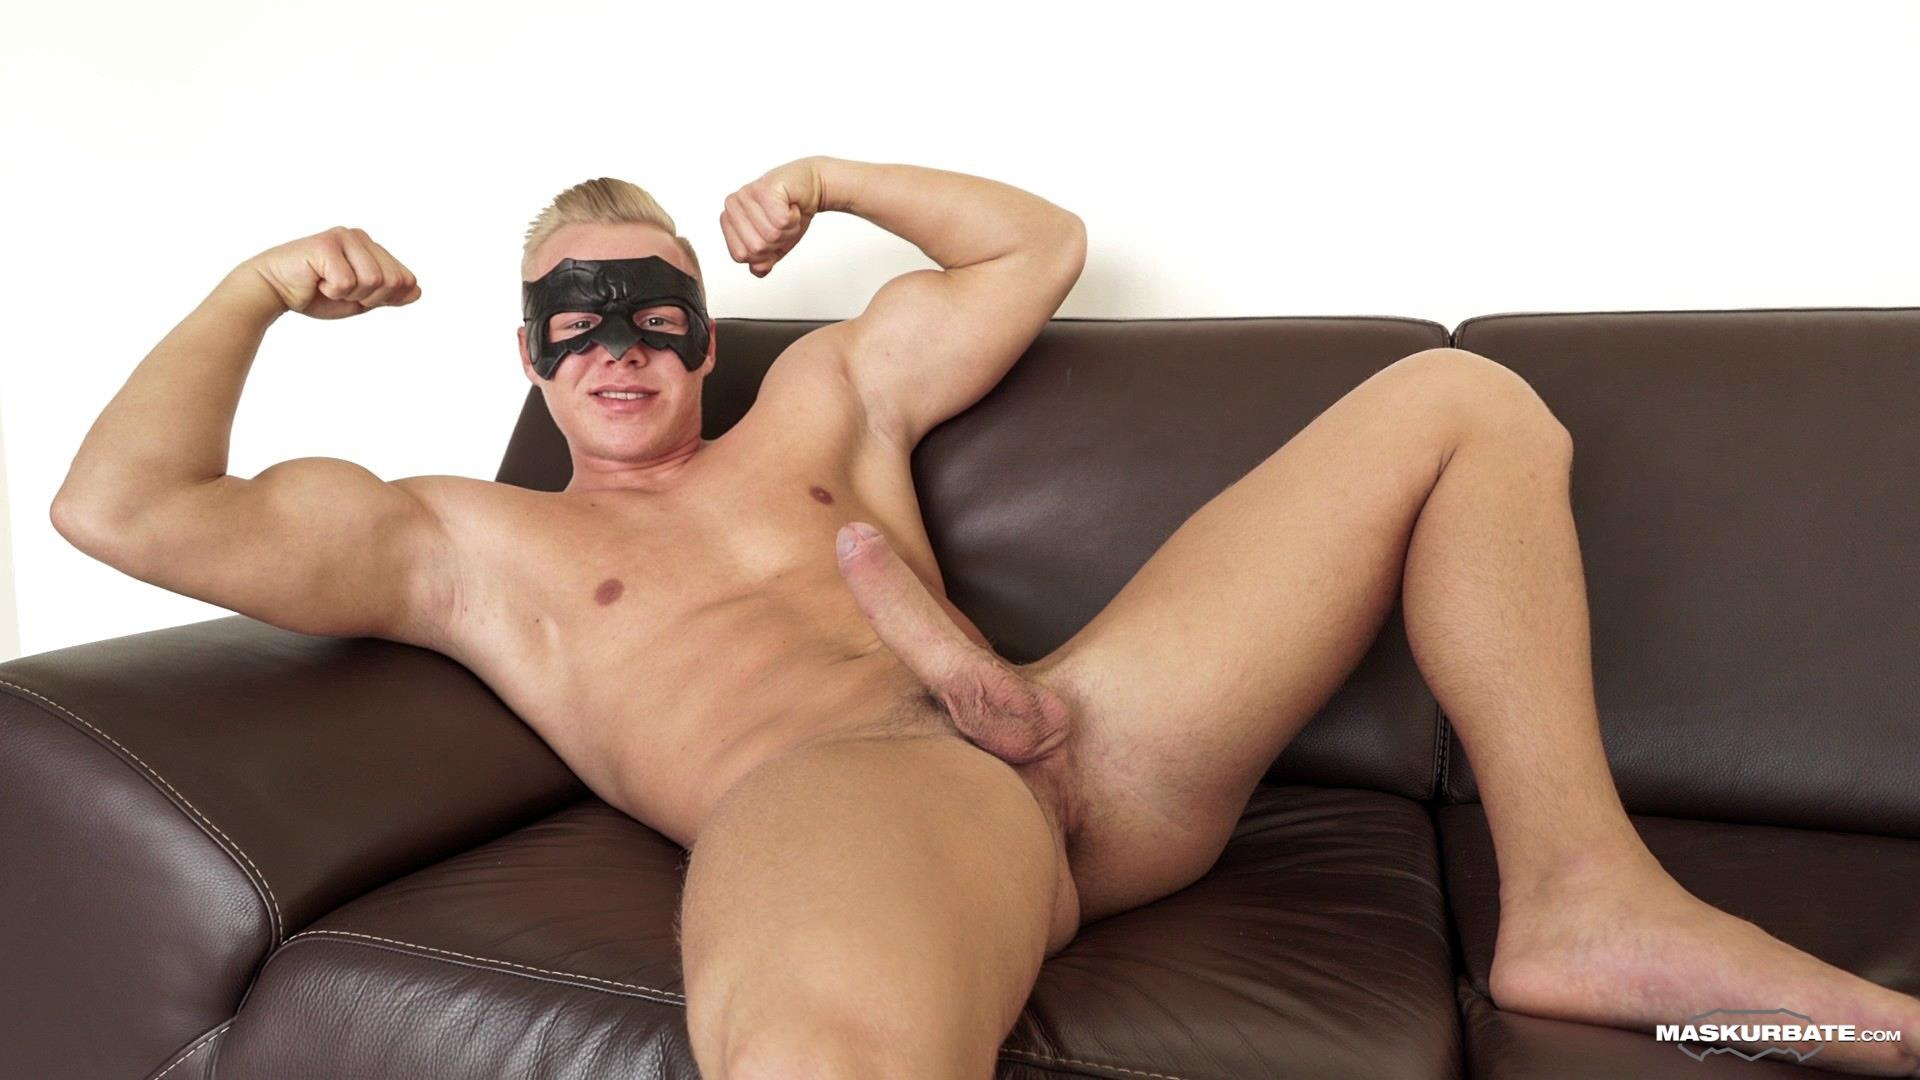 Maskurbate-Mickey-Big-Uncut-Cock-Muscle-Hunk-Jerking-Off-Video-05 Big Uncut Cock Blond Muscle Hunk Auditions For Gay Porn